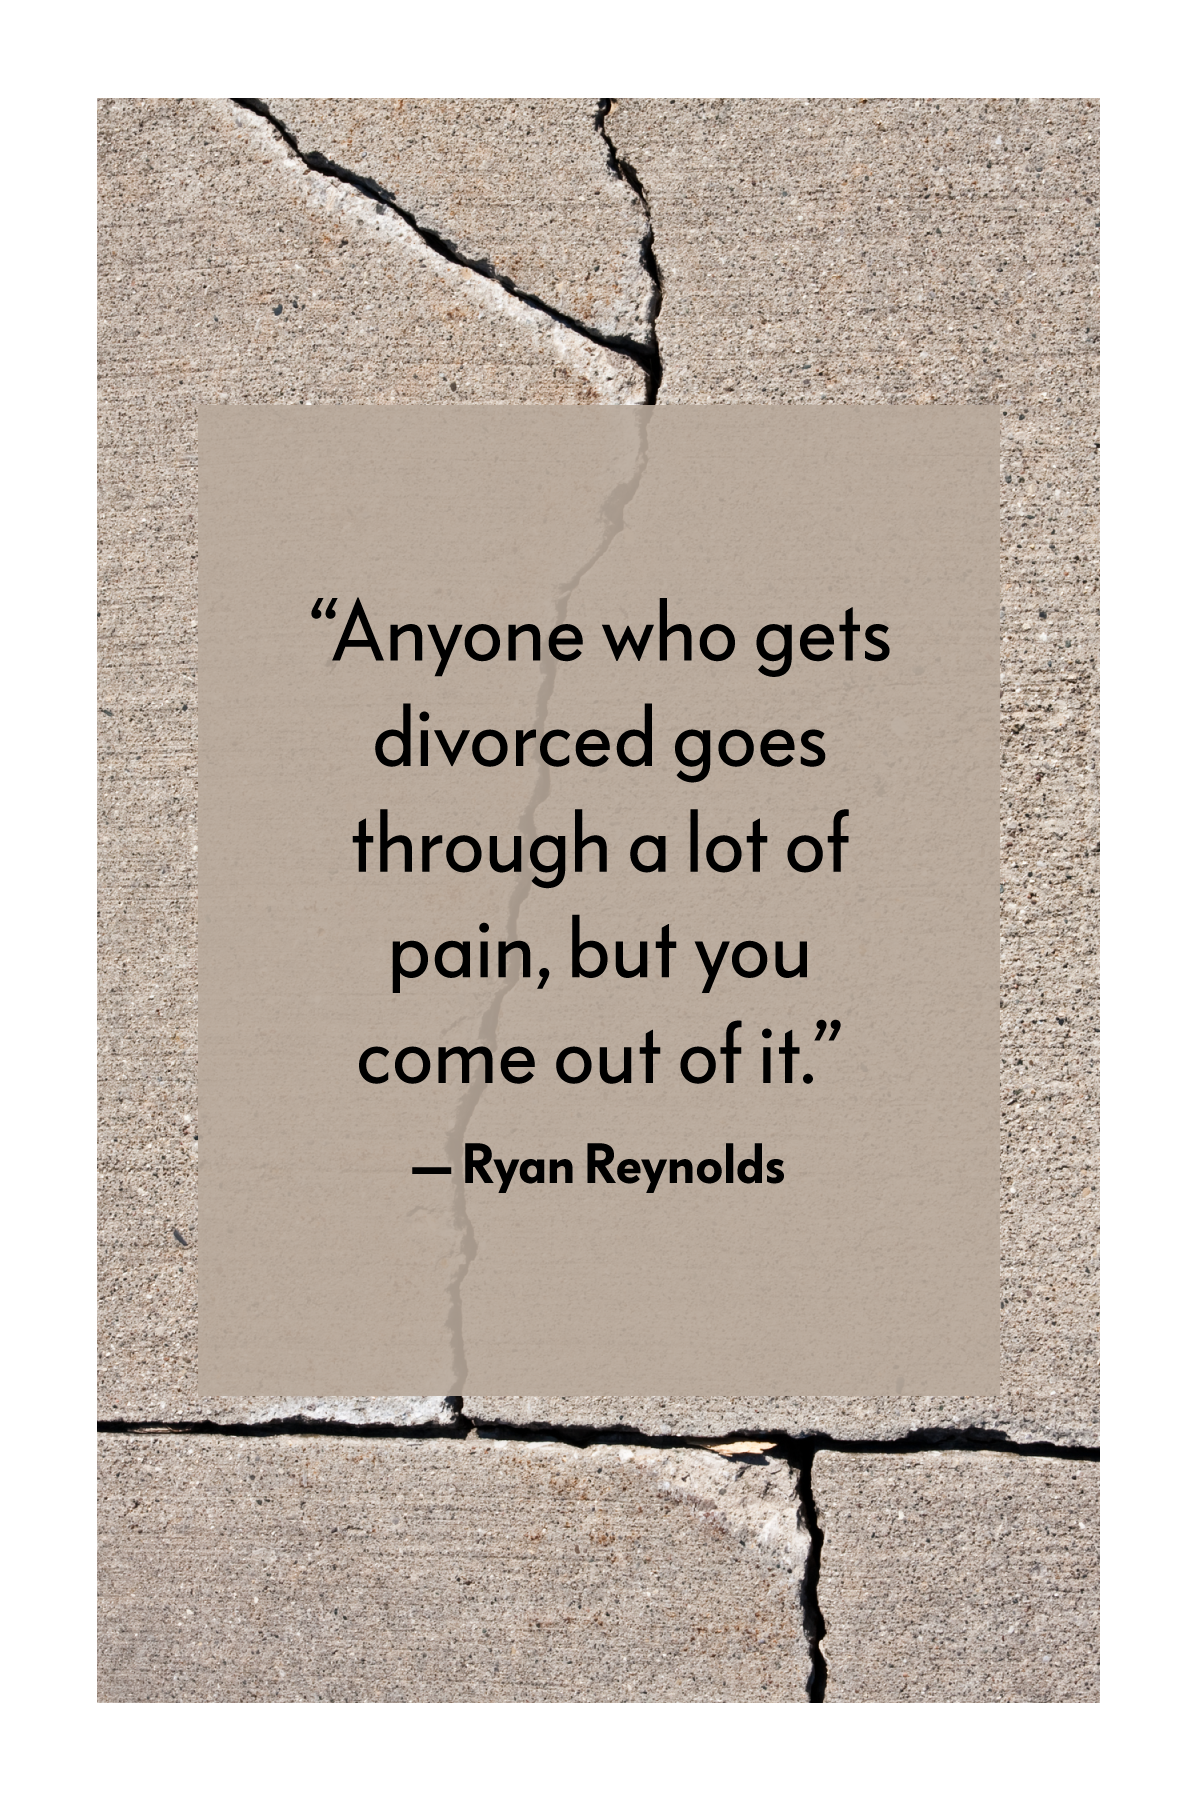 35 Divorce Quotes to Help You Move On